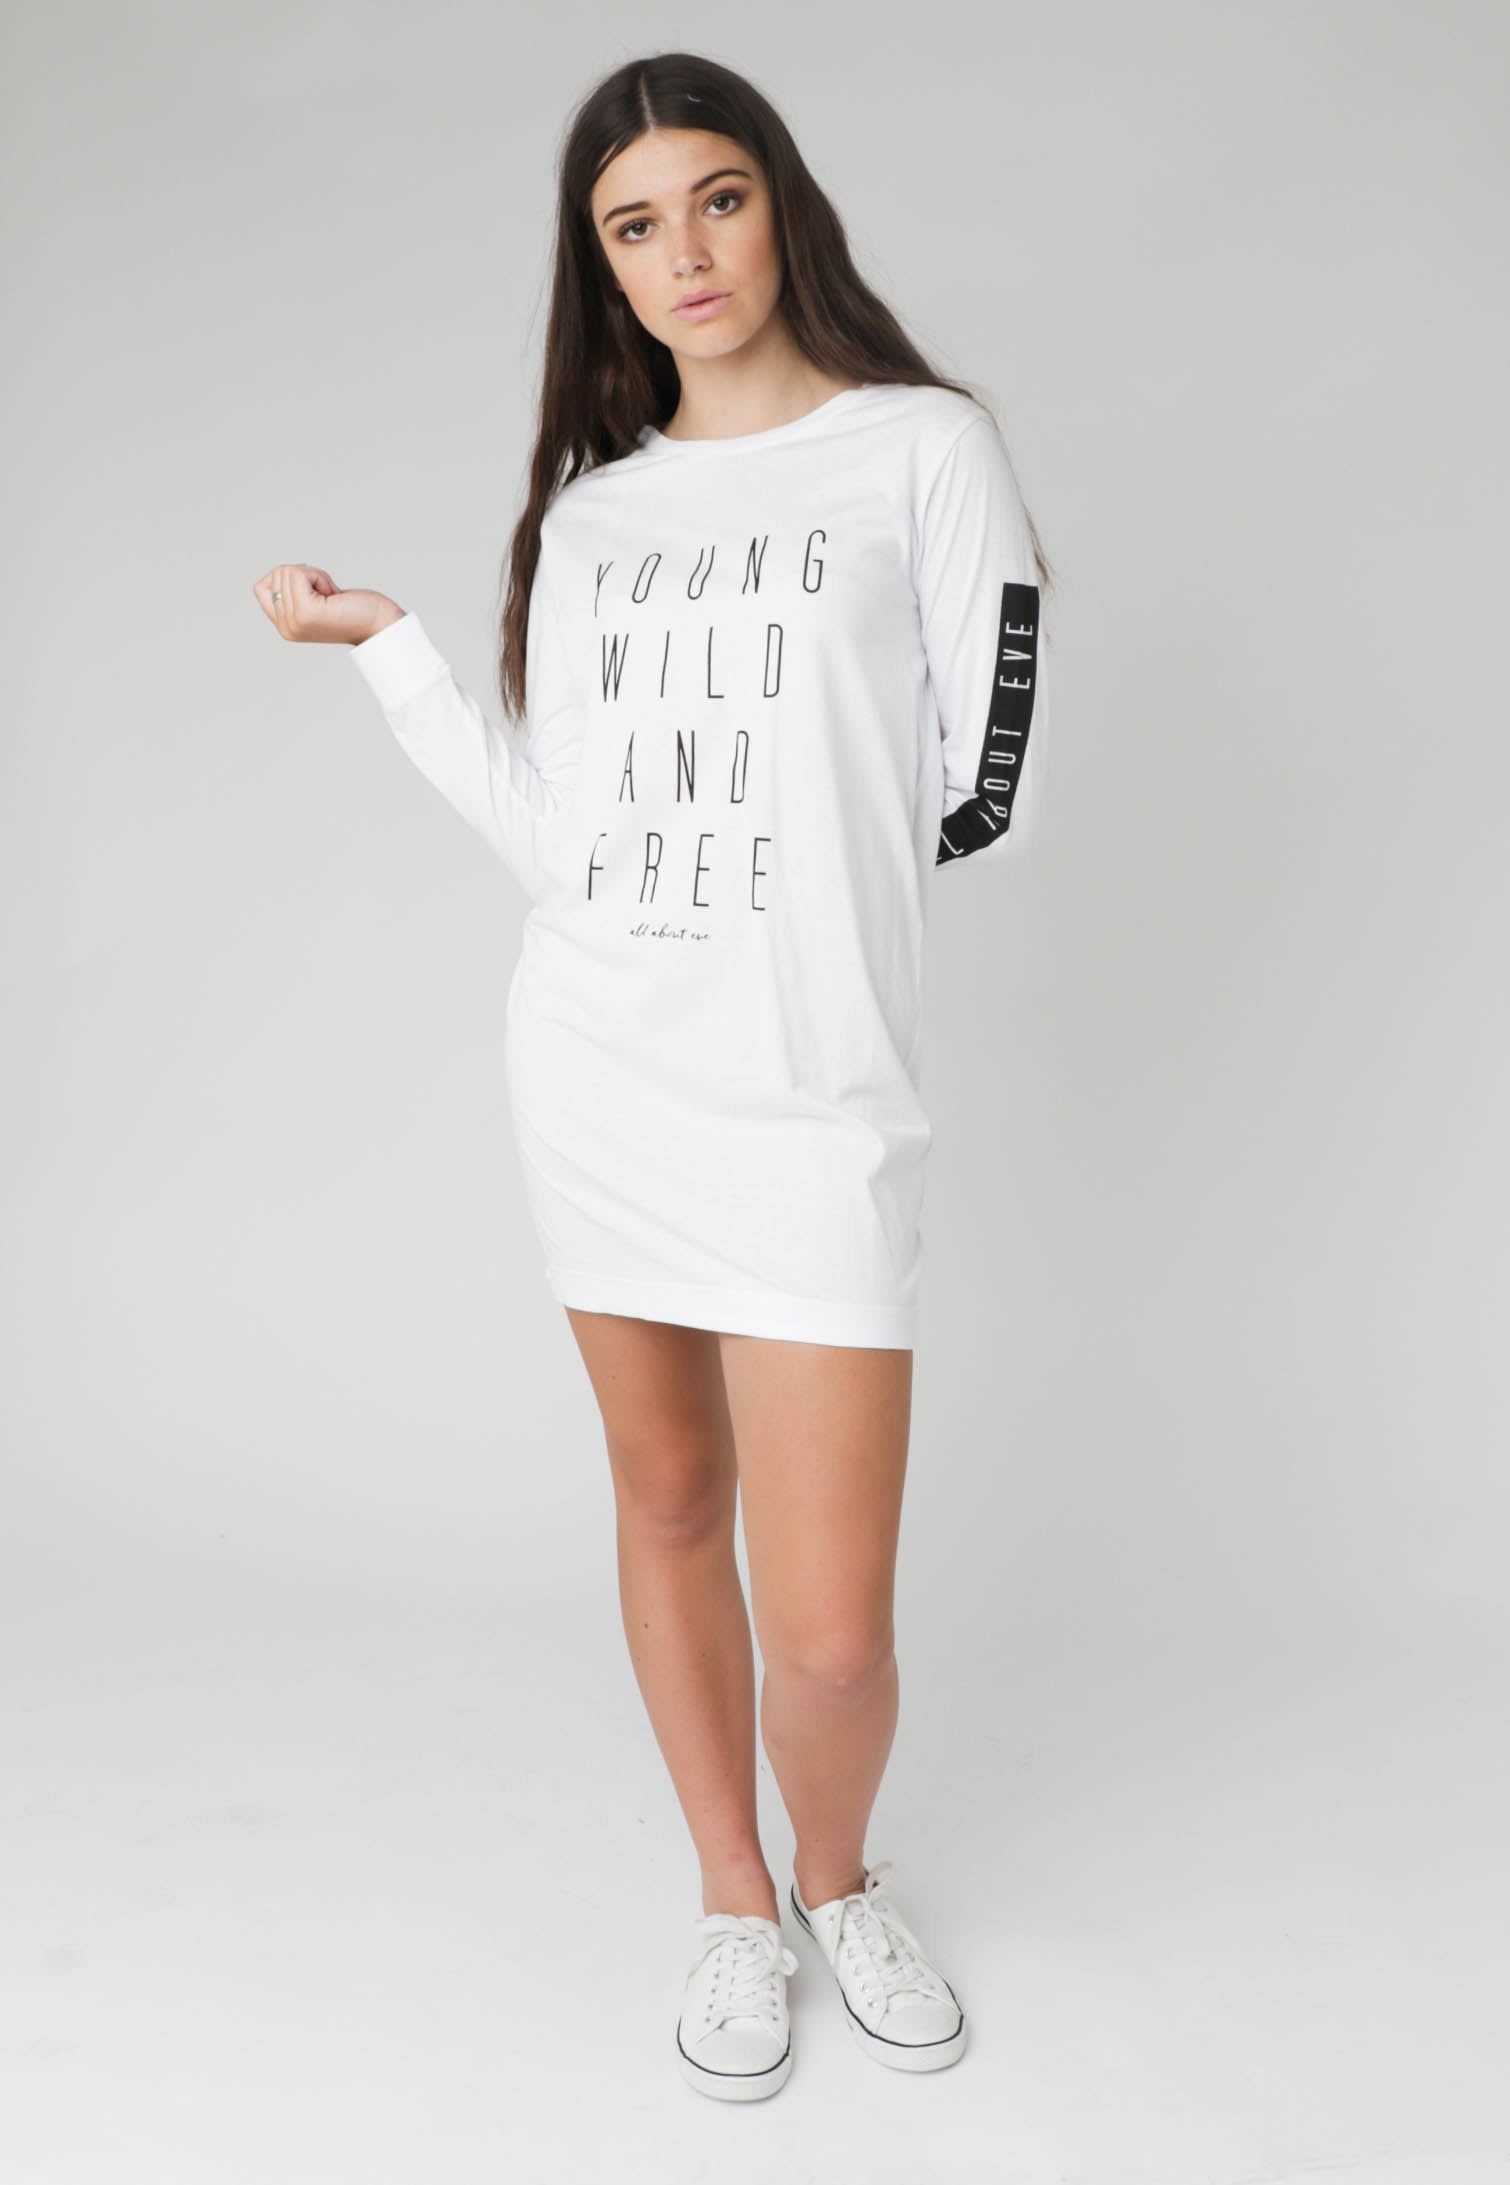 All About Eve - YWF L/S Tee Dress  - White